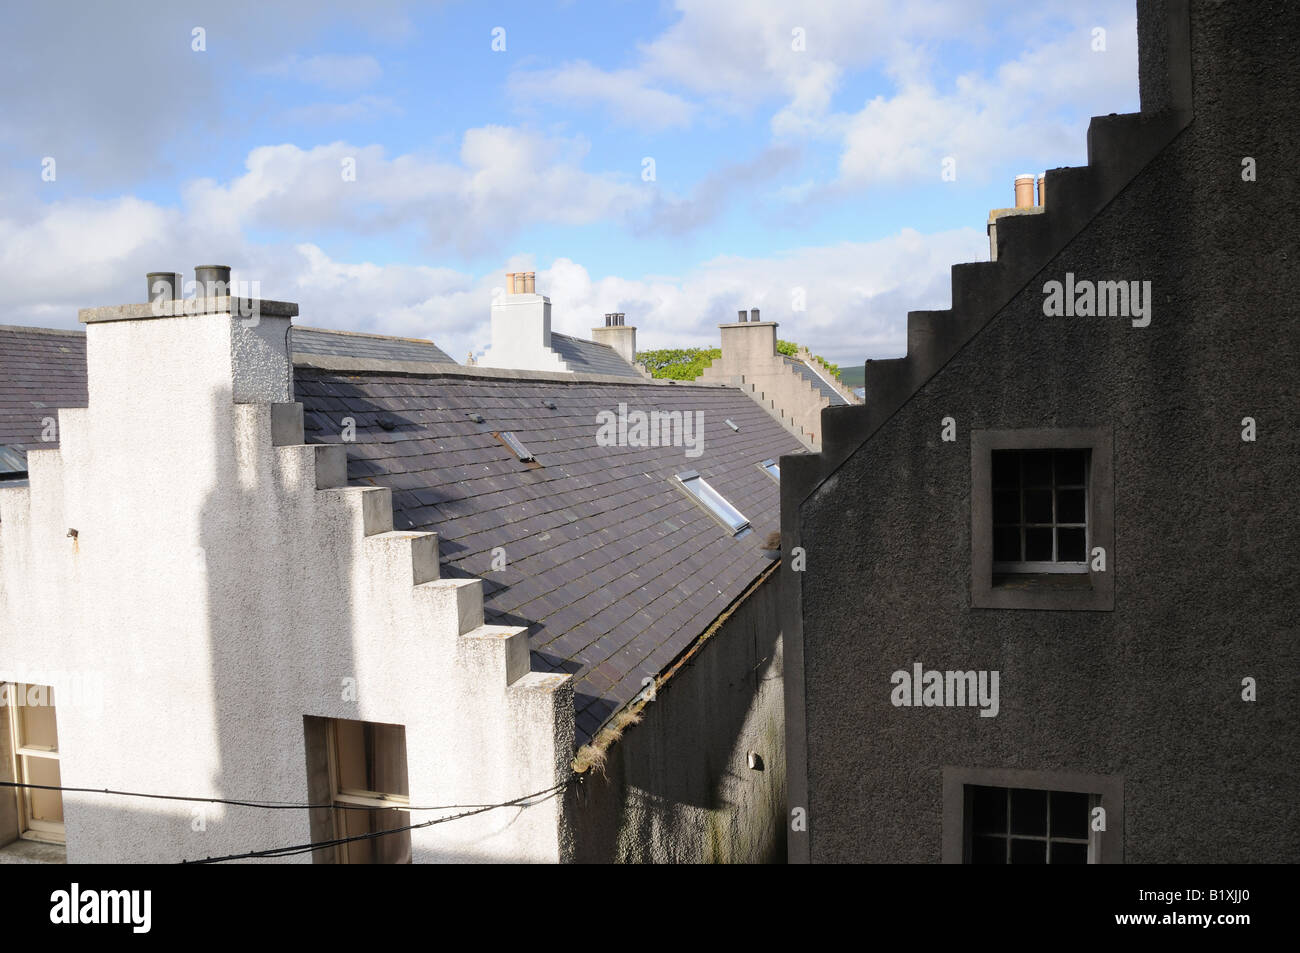 Crow-stepped roof lines on houses in Kirkwall, the capital of the Orkney Islands, are typical of the 17th century. - Stock Image